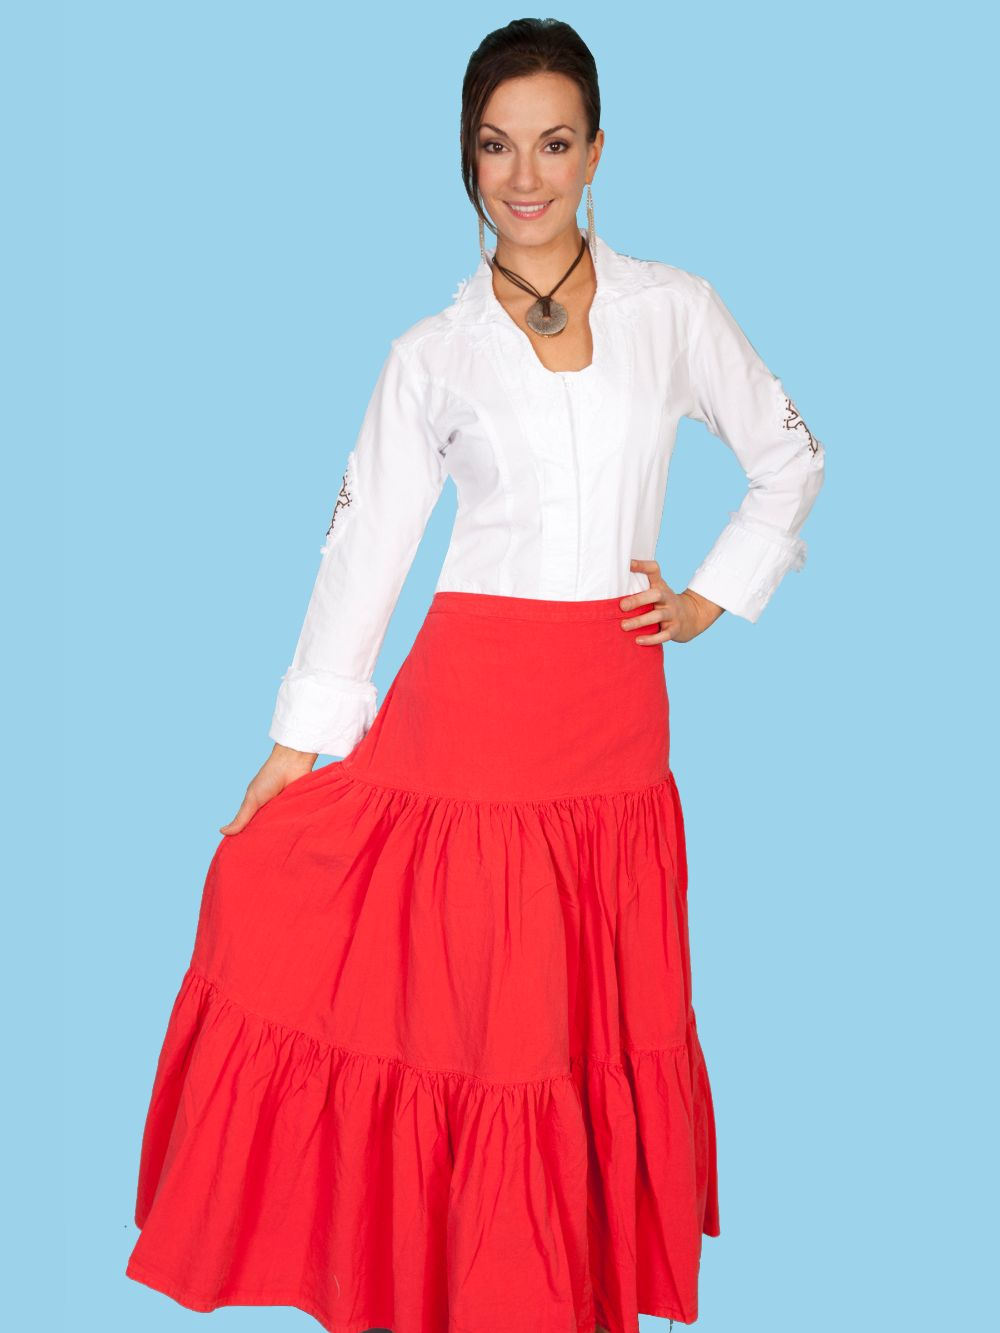 3 Tier Skirt - Psl-077 - Vermilion. (ships in 1-2 days). #F0_PSL-077_VRM